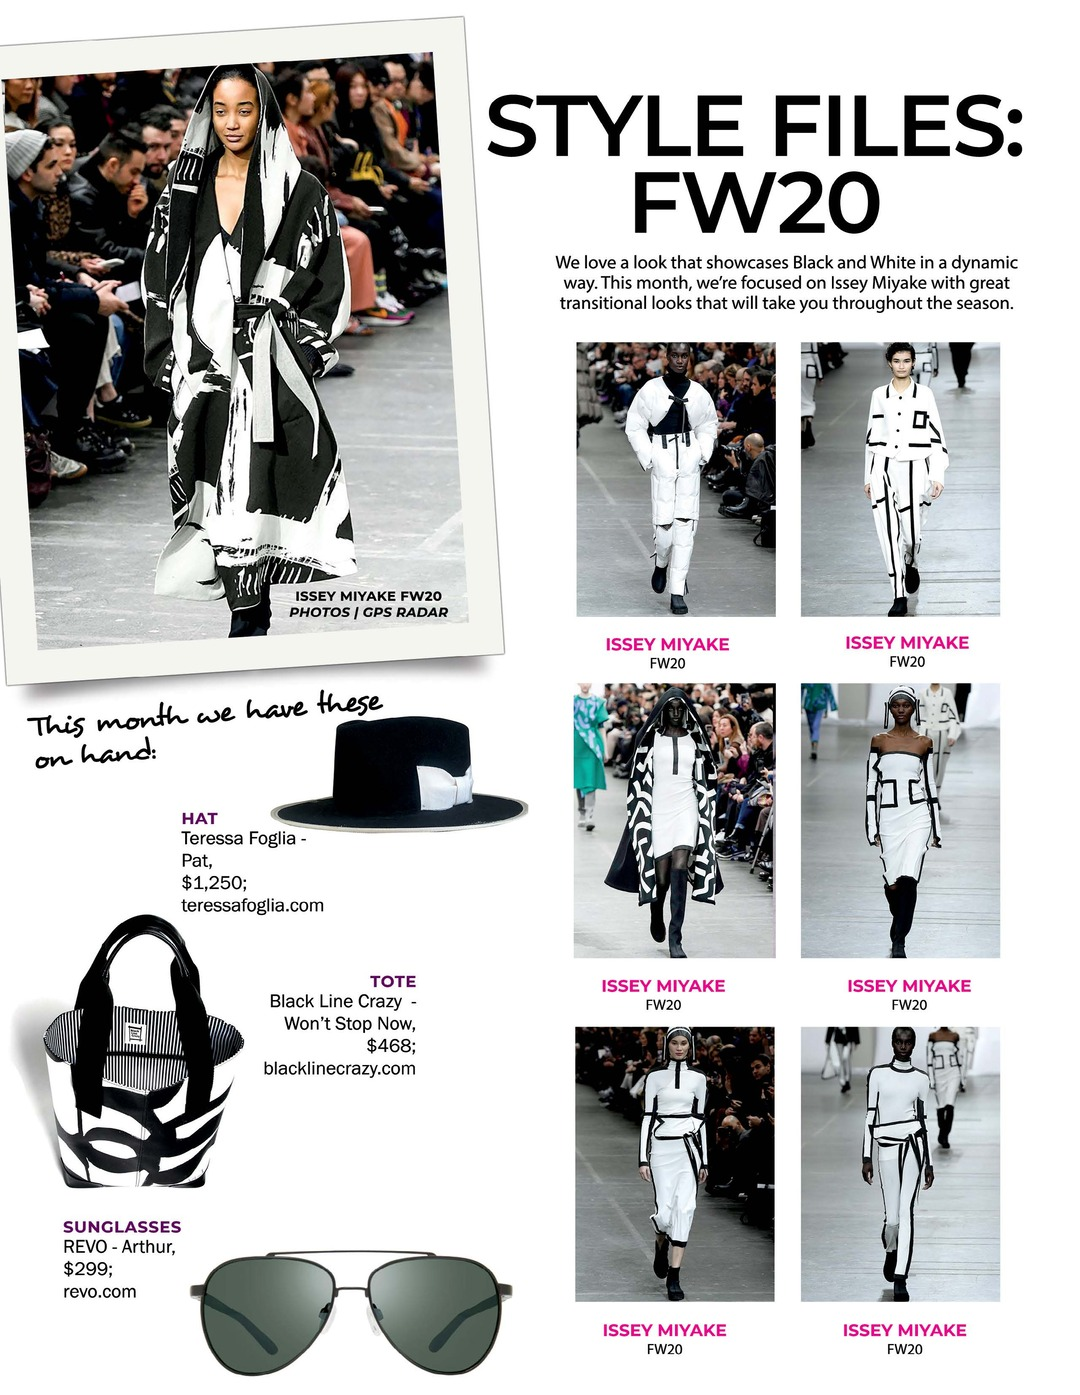 Page 88 of Athleisure Mag #53 May 2020 | STYLE FILES FW20